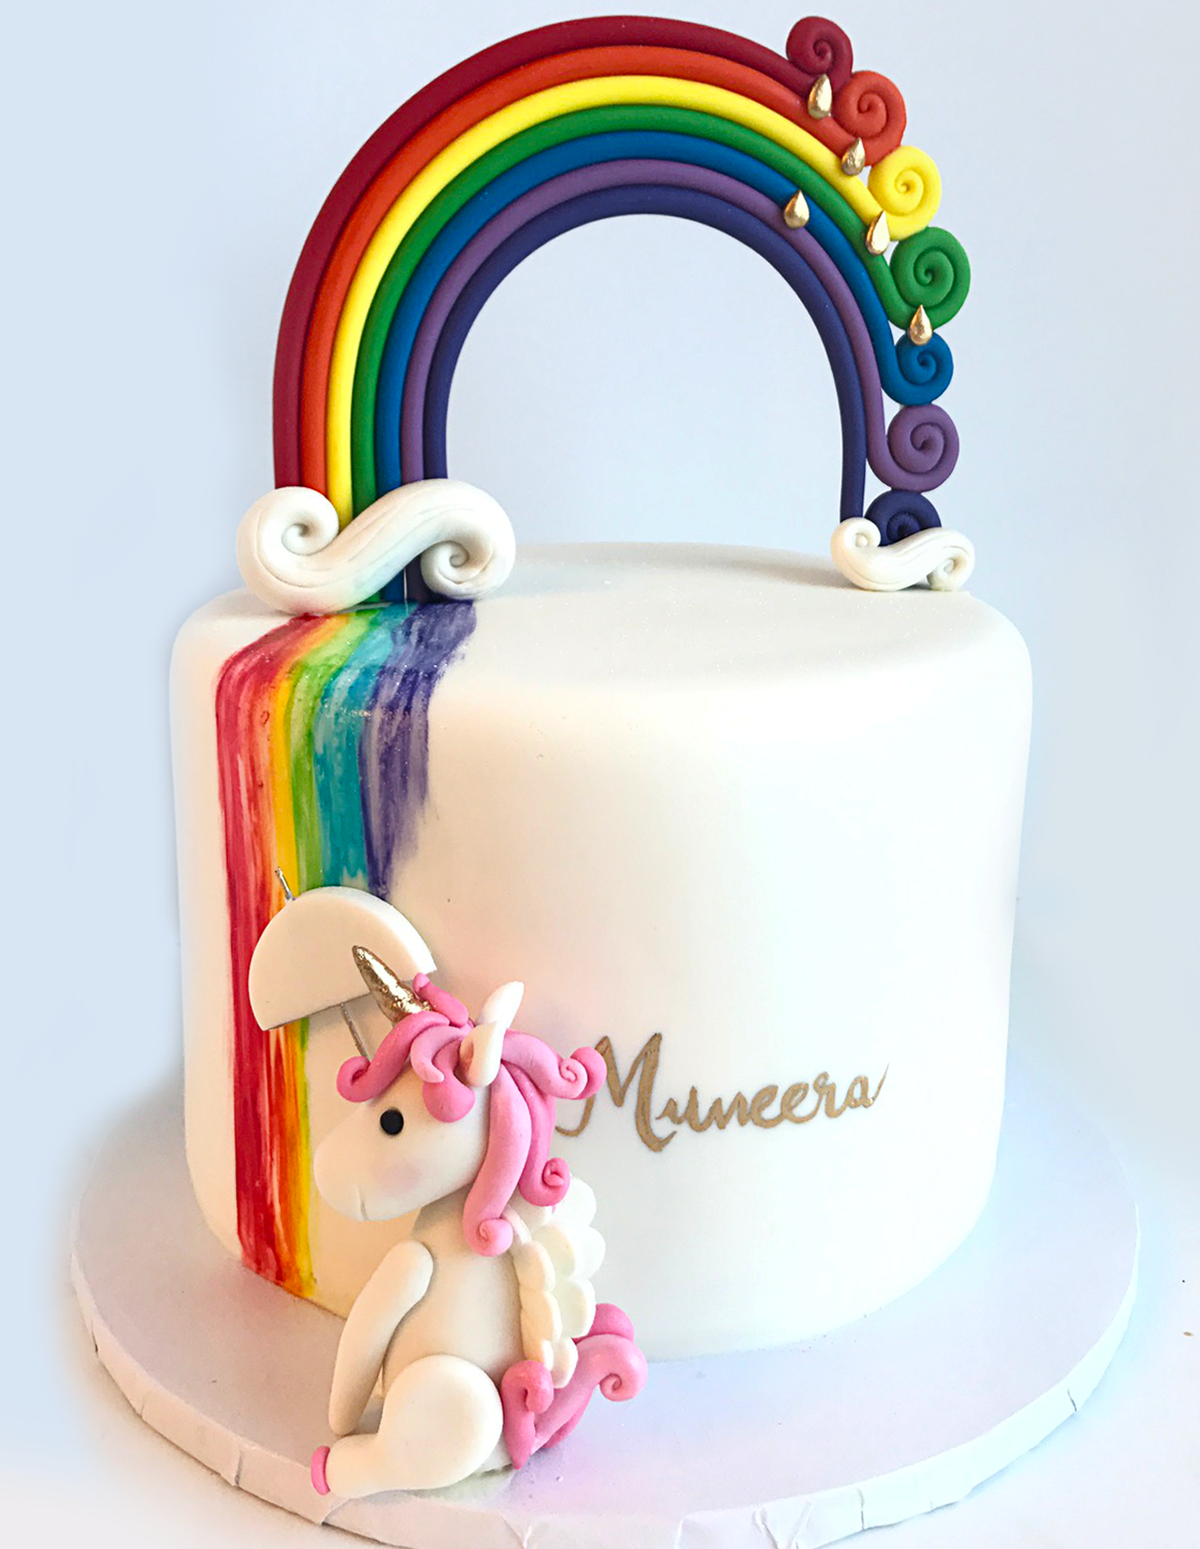 Whippt Unicorn Rainbow cake1